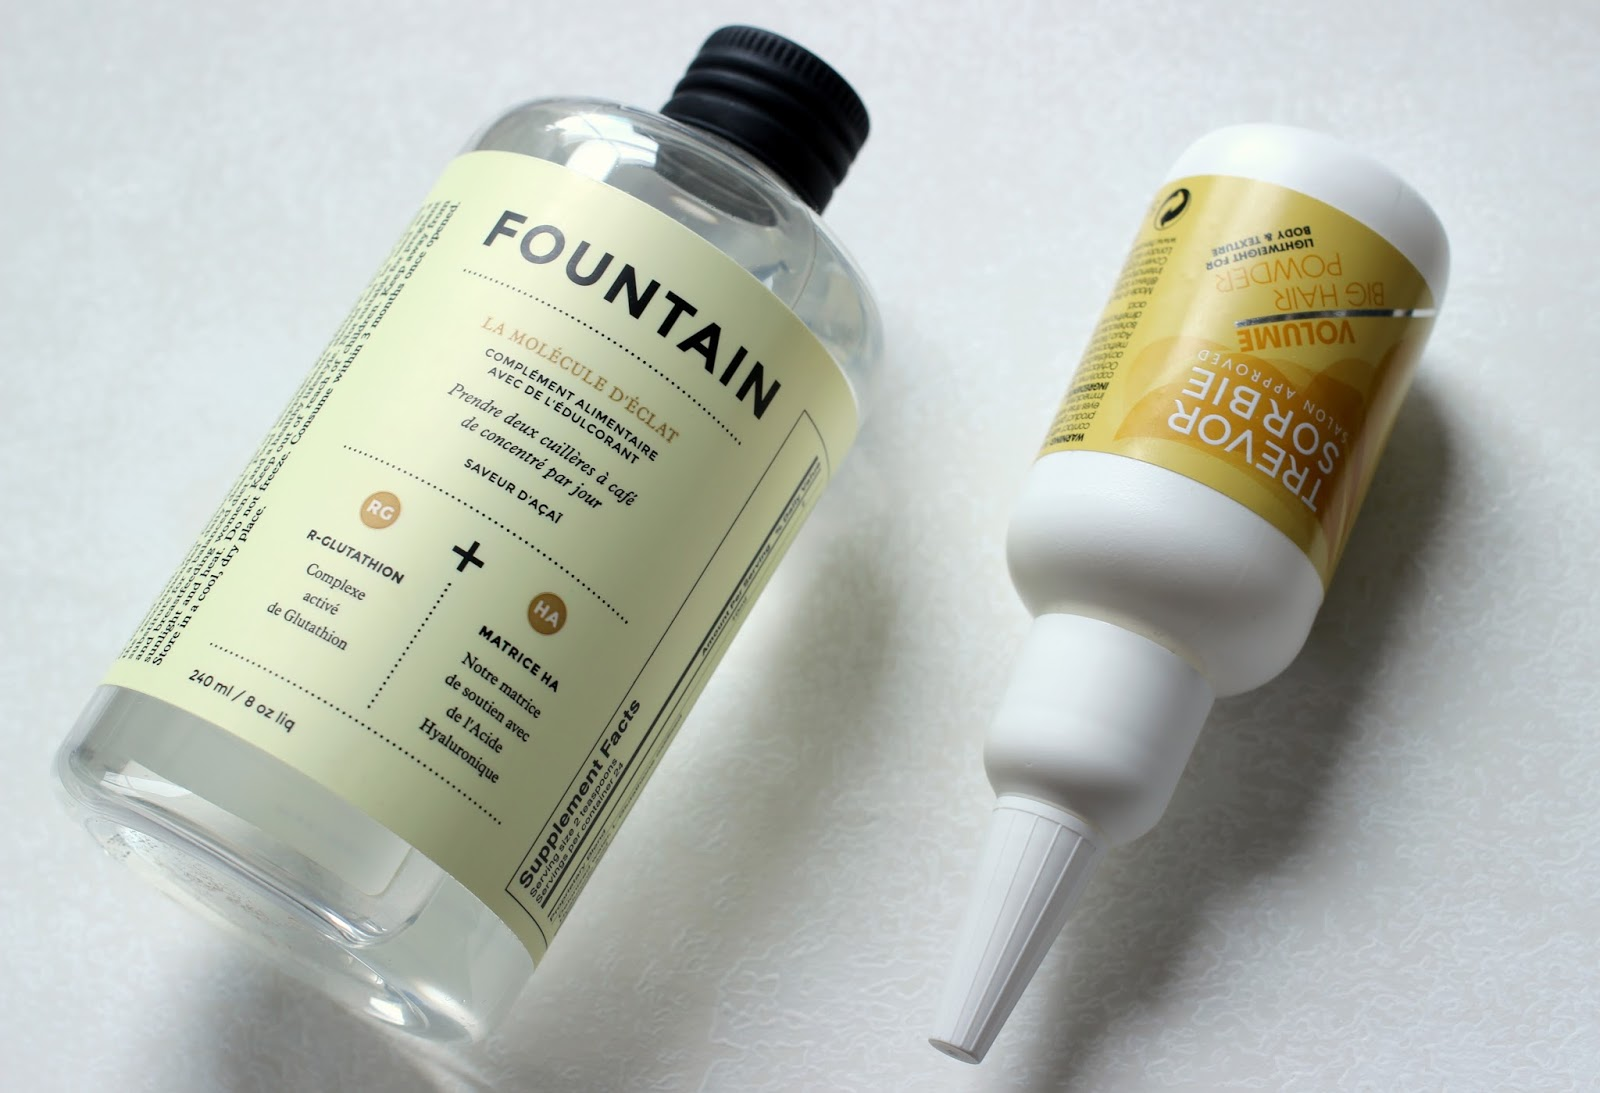 Fountain The Glow Molecule Review